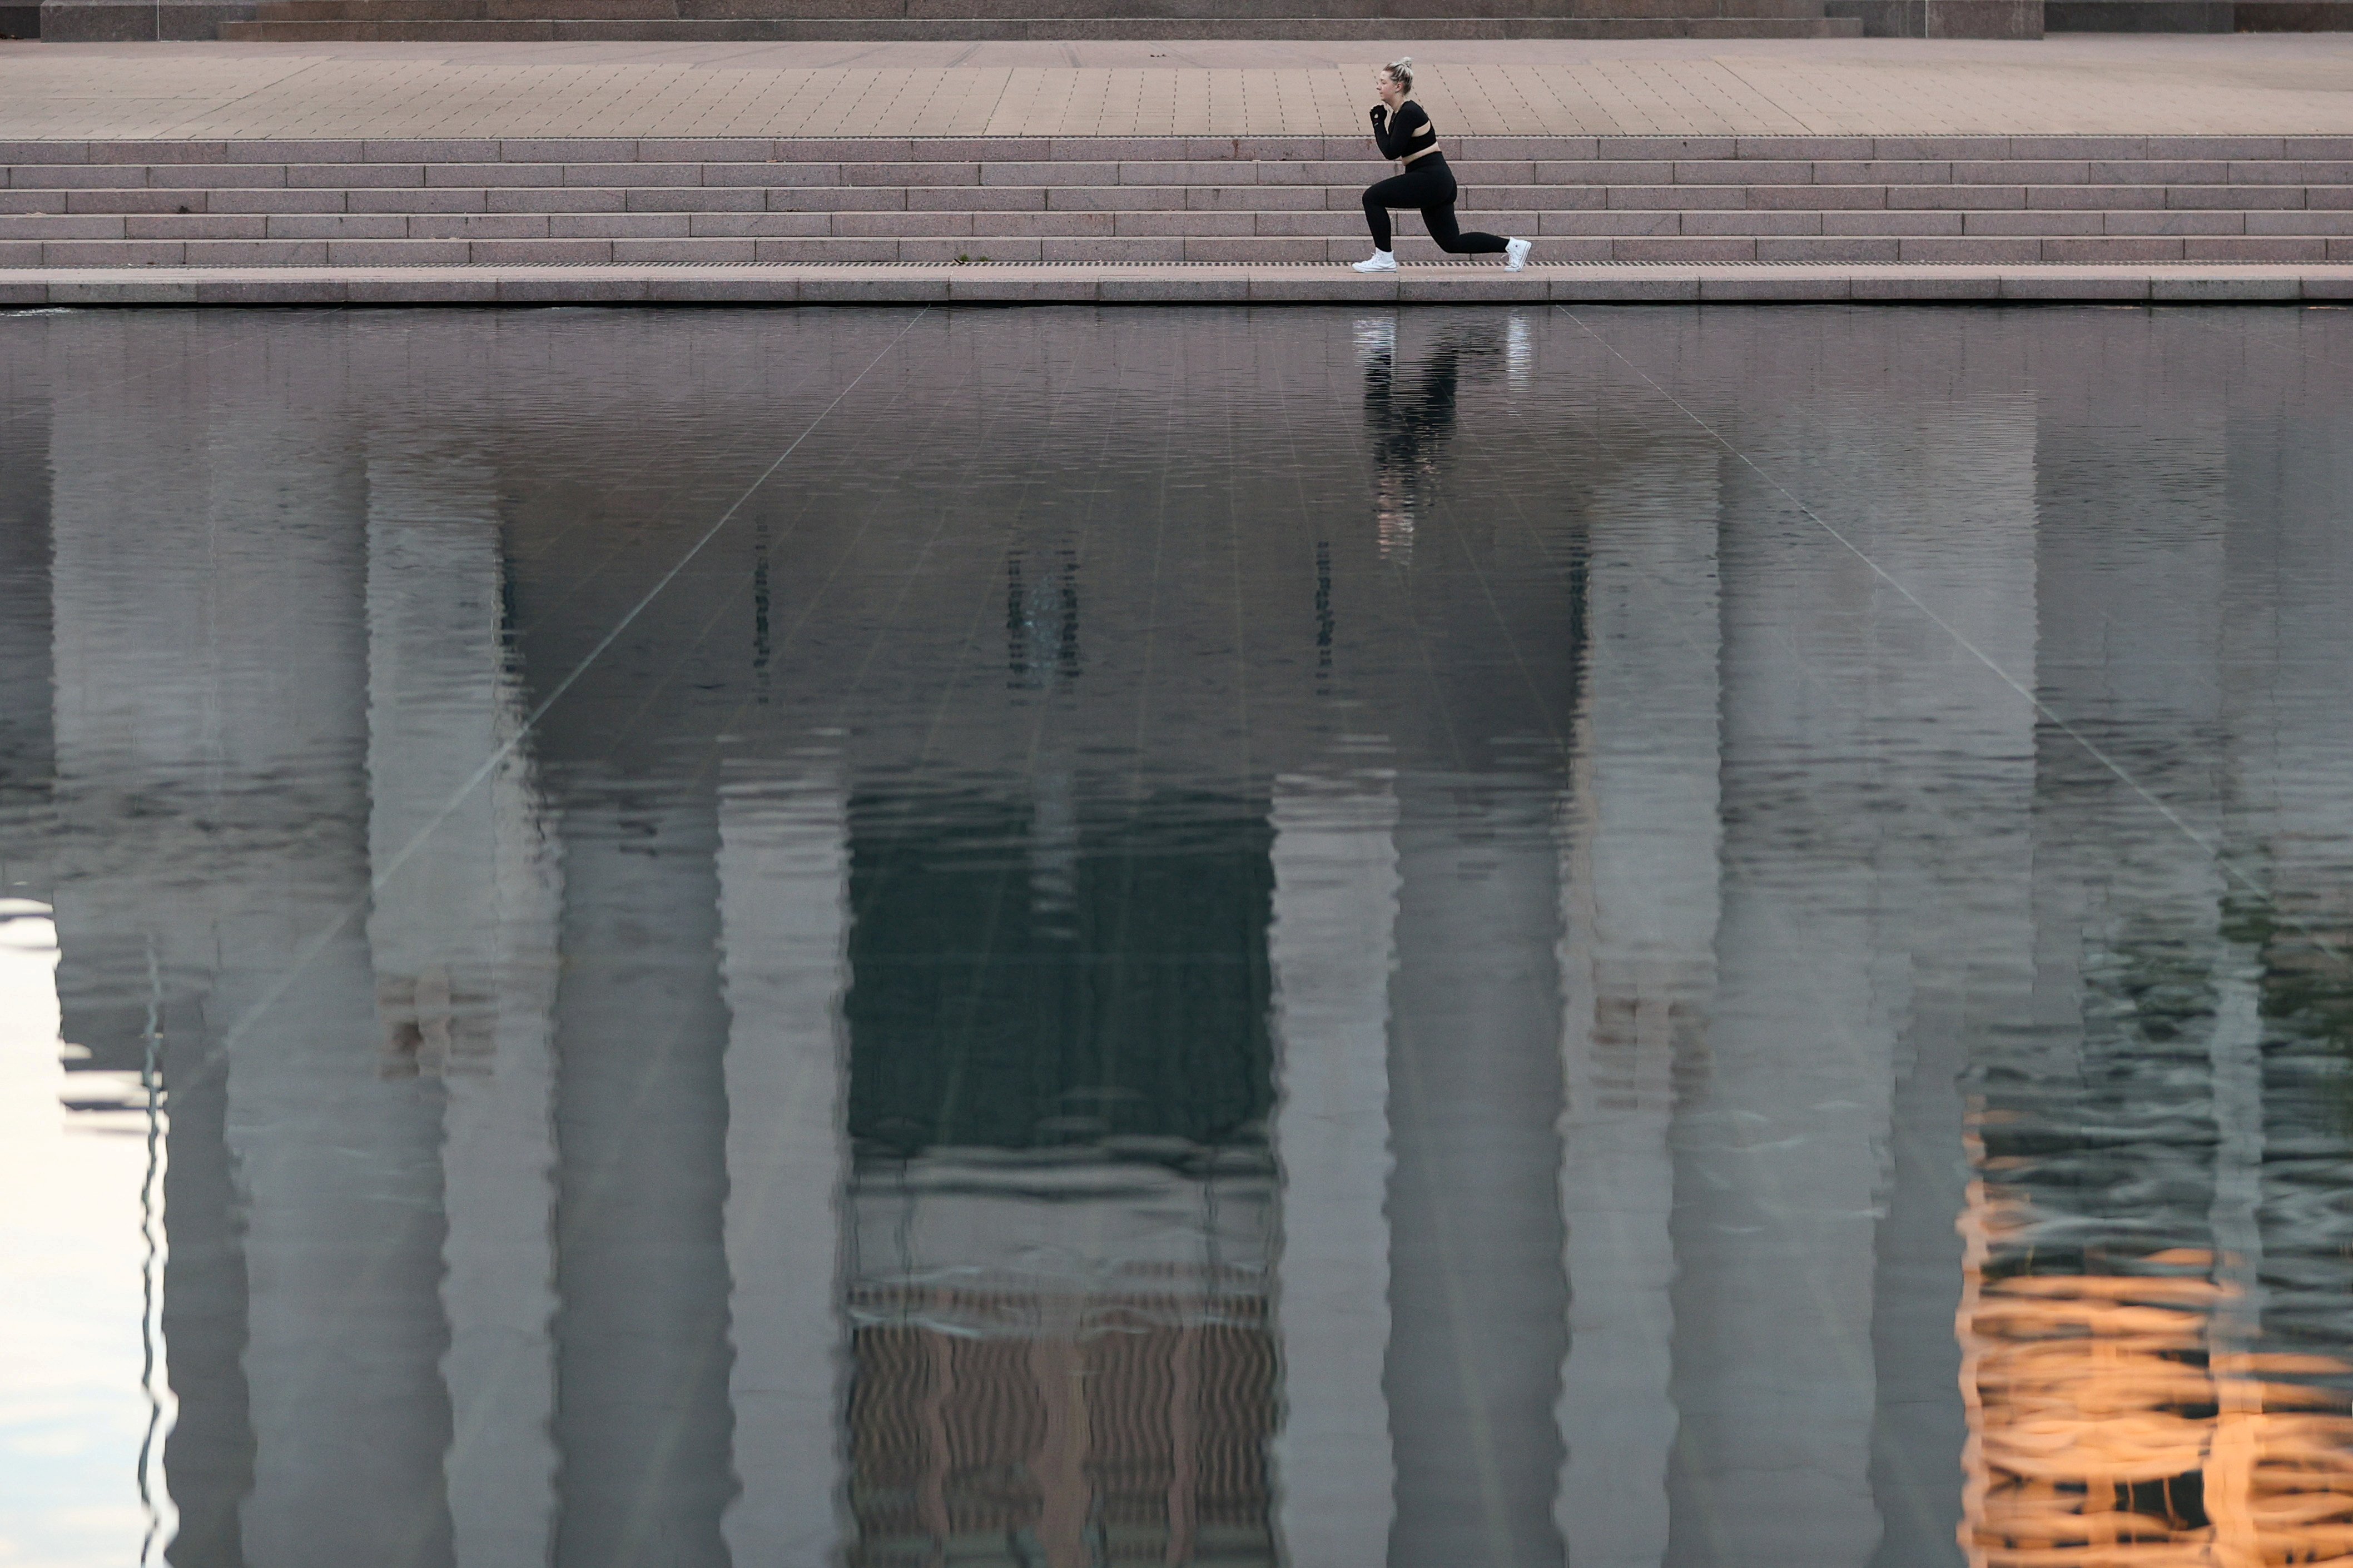 A woman exercises on the empty steps in front of the Anzac Memorial at the Pool of Reflection as gyms are closed during a lockdown to curb the spread of a coronavirus disease (COVID-19) outbreak in Sydney, Australia, July 22, 2021.  REUTERS/Loren Elliott/File Photo